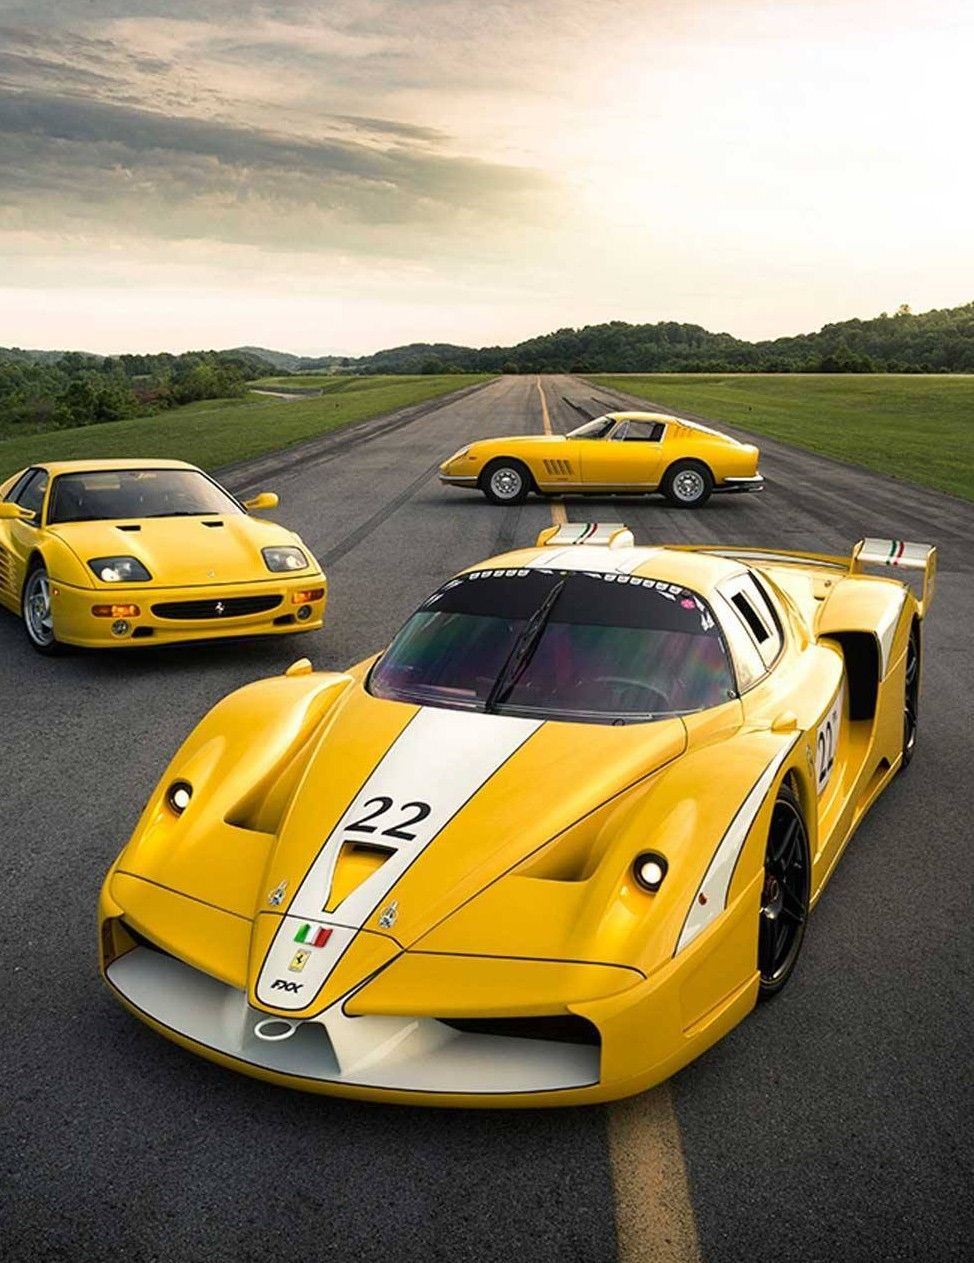 Ferrari Enzo Fxx Yellow Car Ferrari Car Ferrari Super Cars